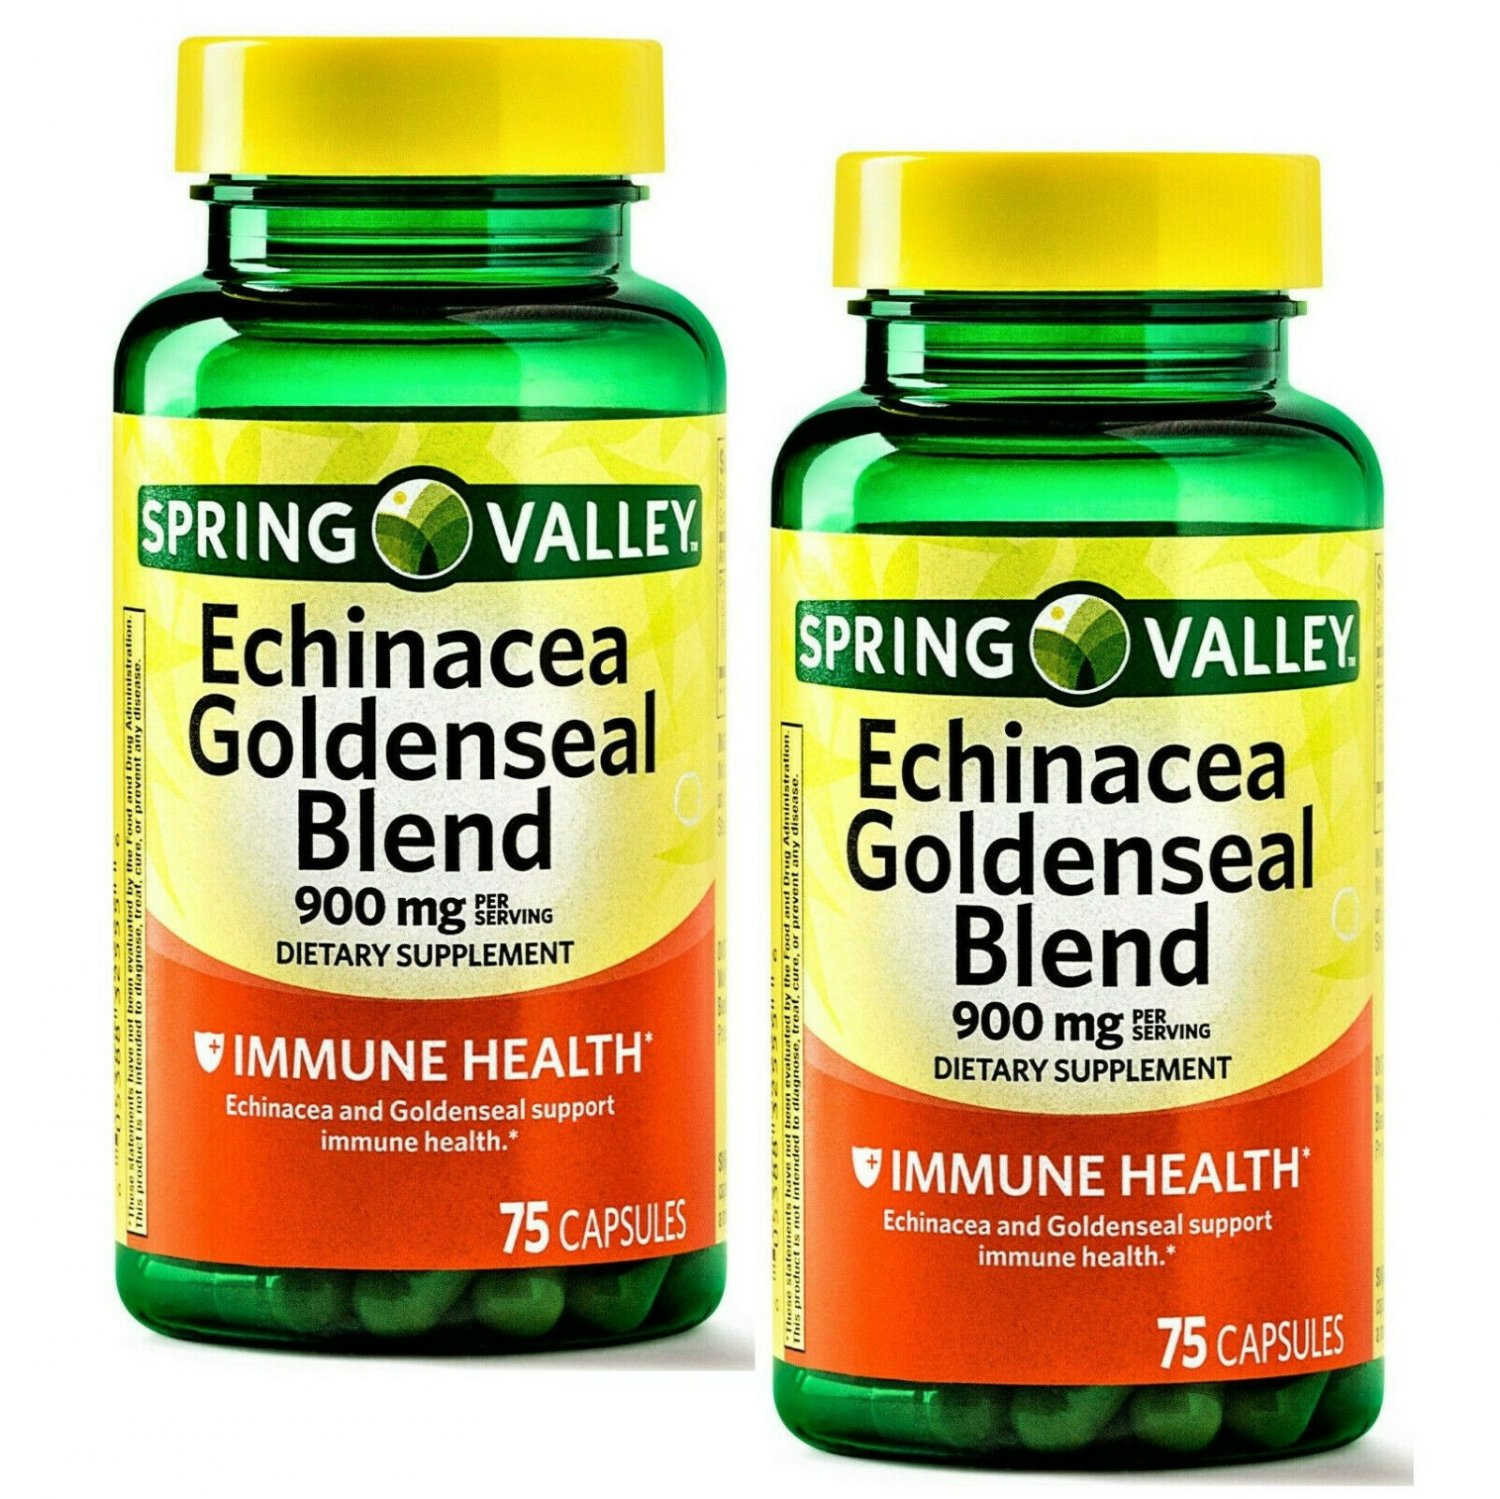 Spring Valley Echinacea & Goldenseal Extract Blend 900 mg 75 Capsules (Pack of 2)